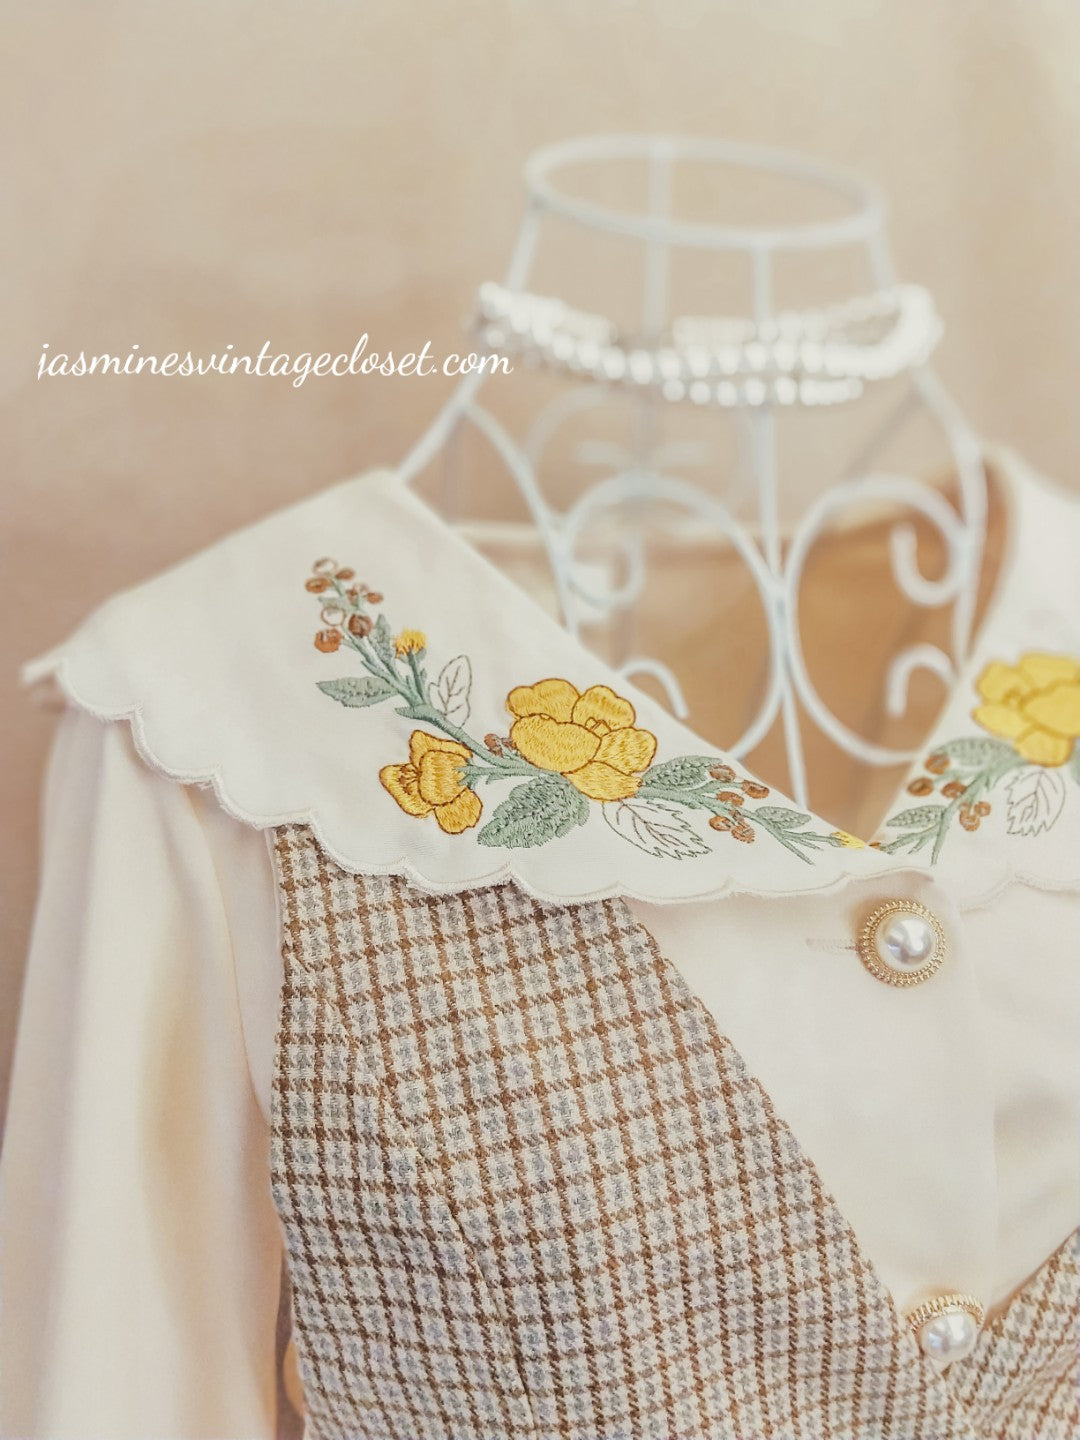 Khaki overalls+ embroidered blouse set